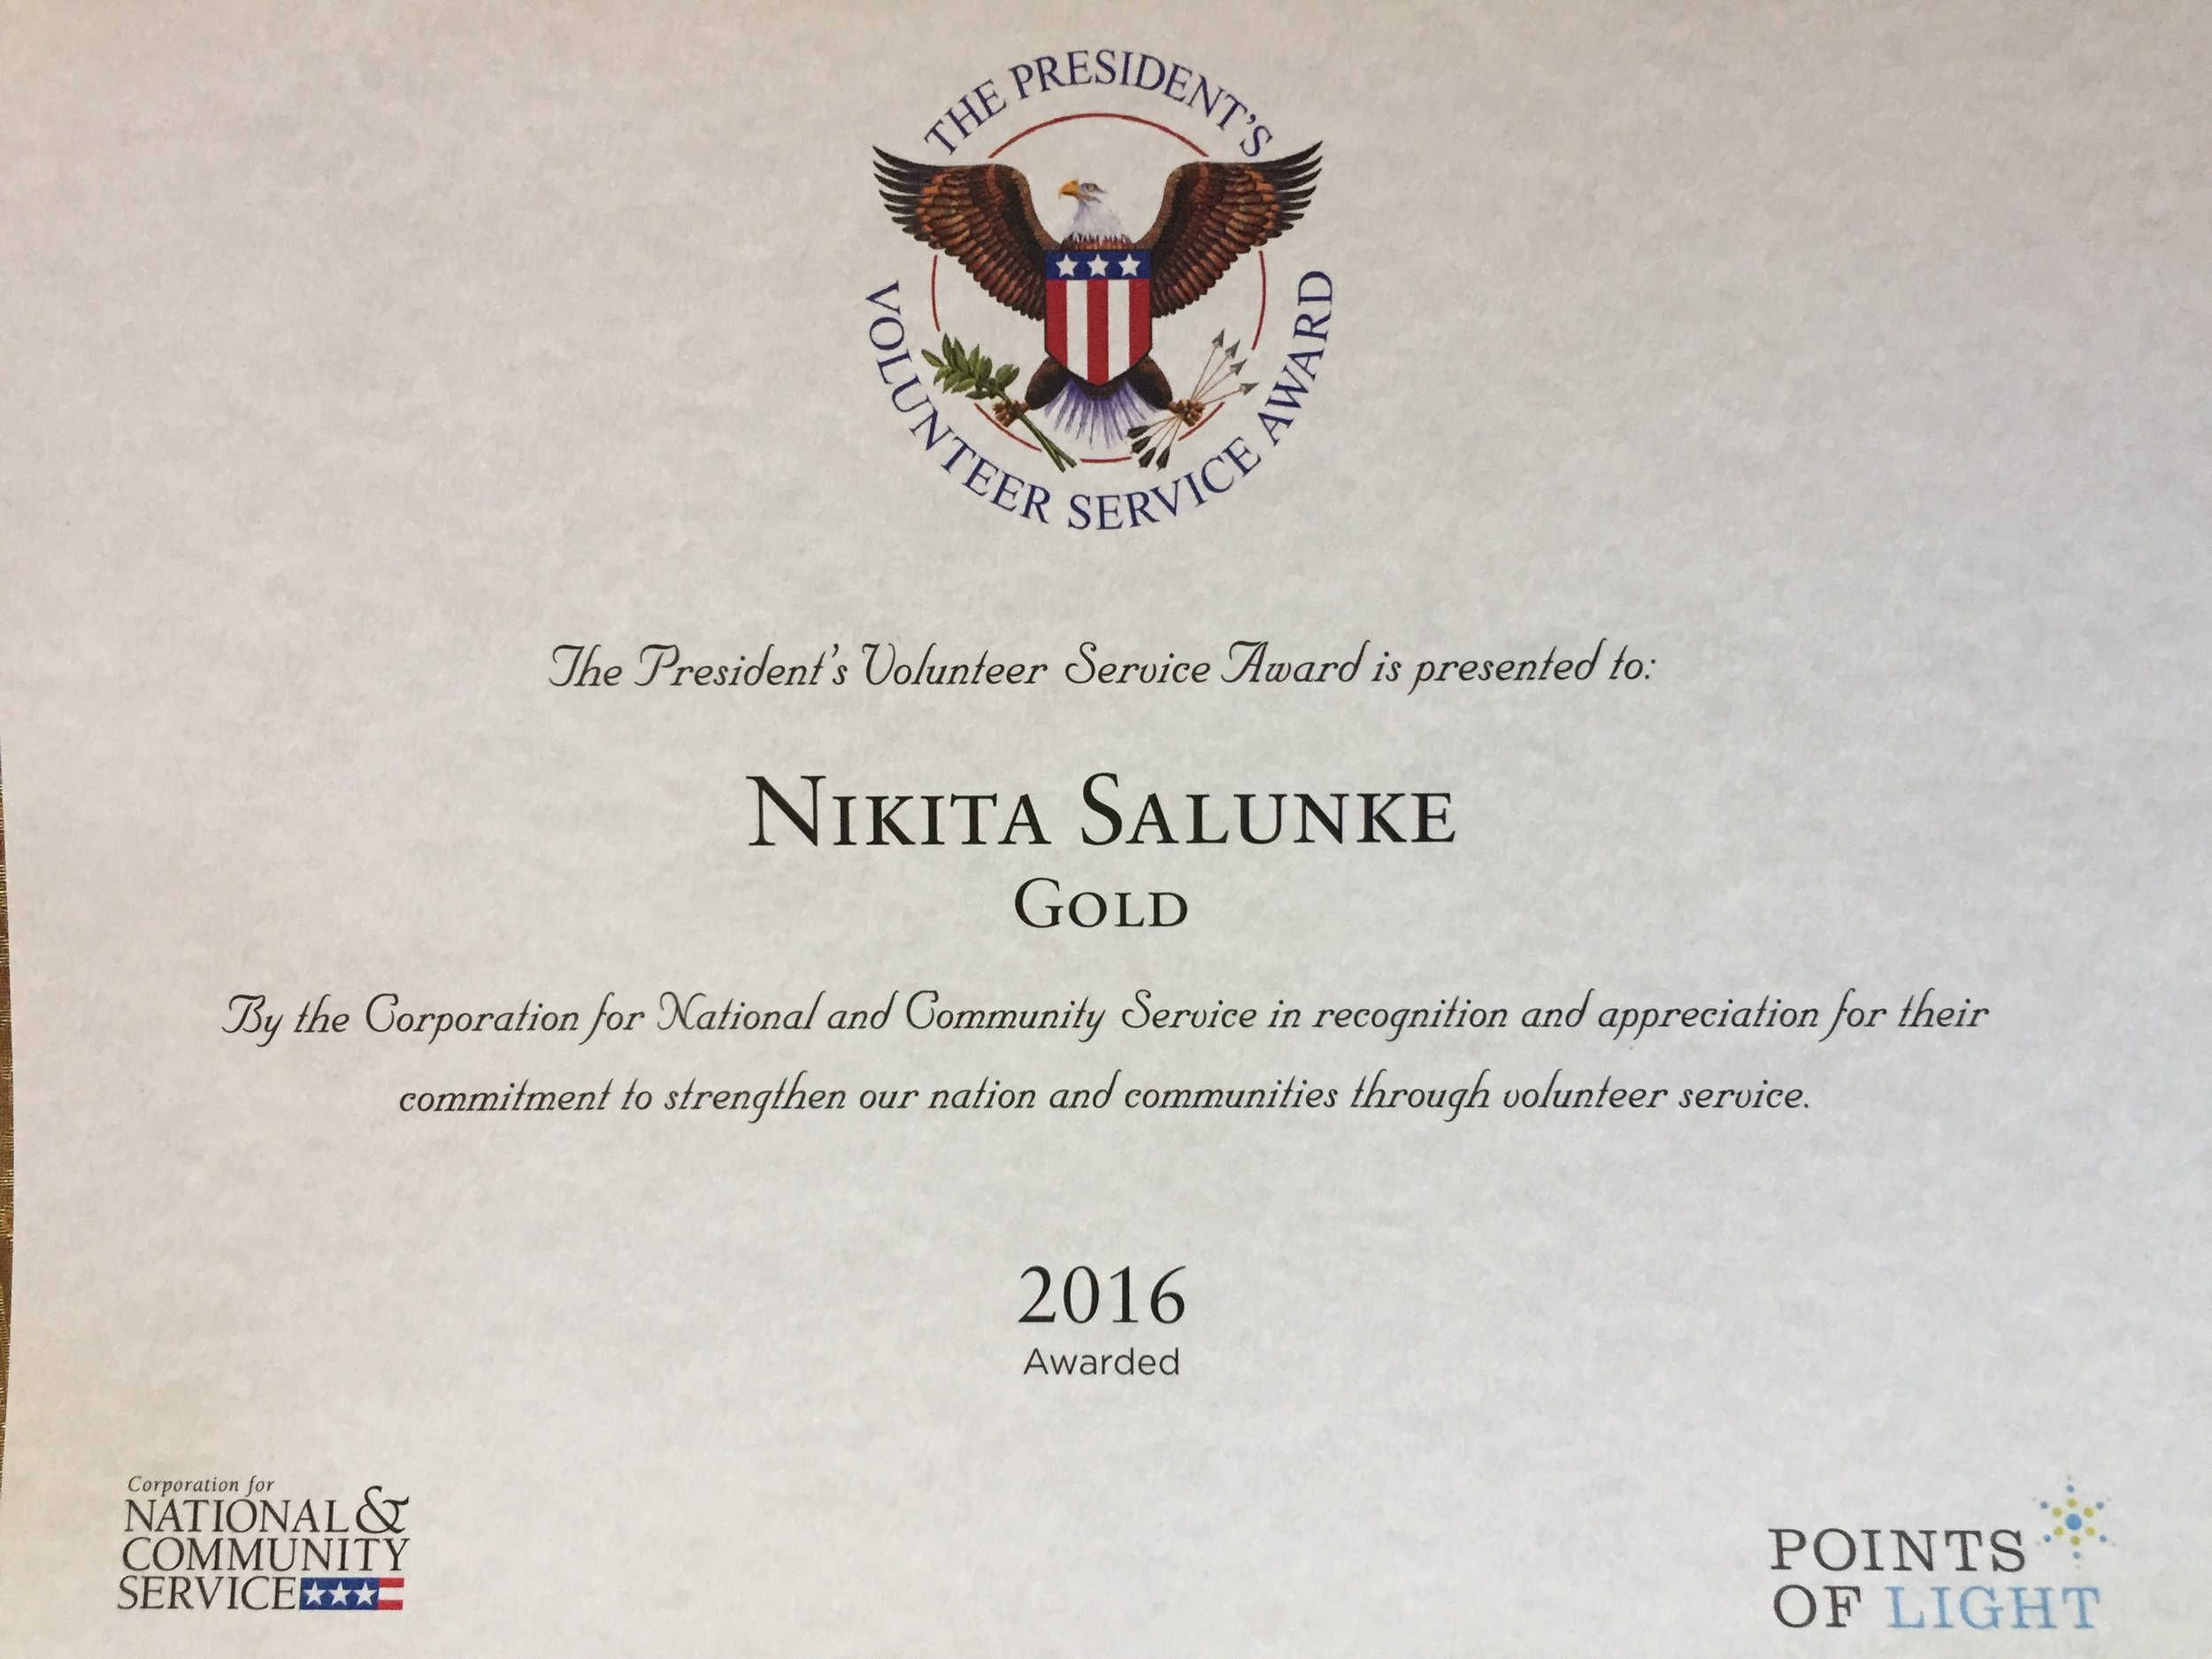 The President's Volunteer Service Award  - In recognition of her work, on behalf of WoolyWarmth, Nikita was awarded a gold medal and a certificate from the President in 2016.